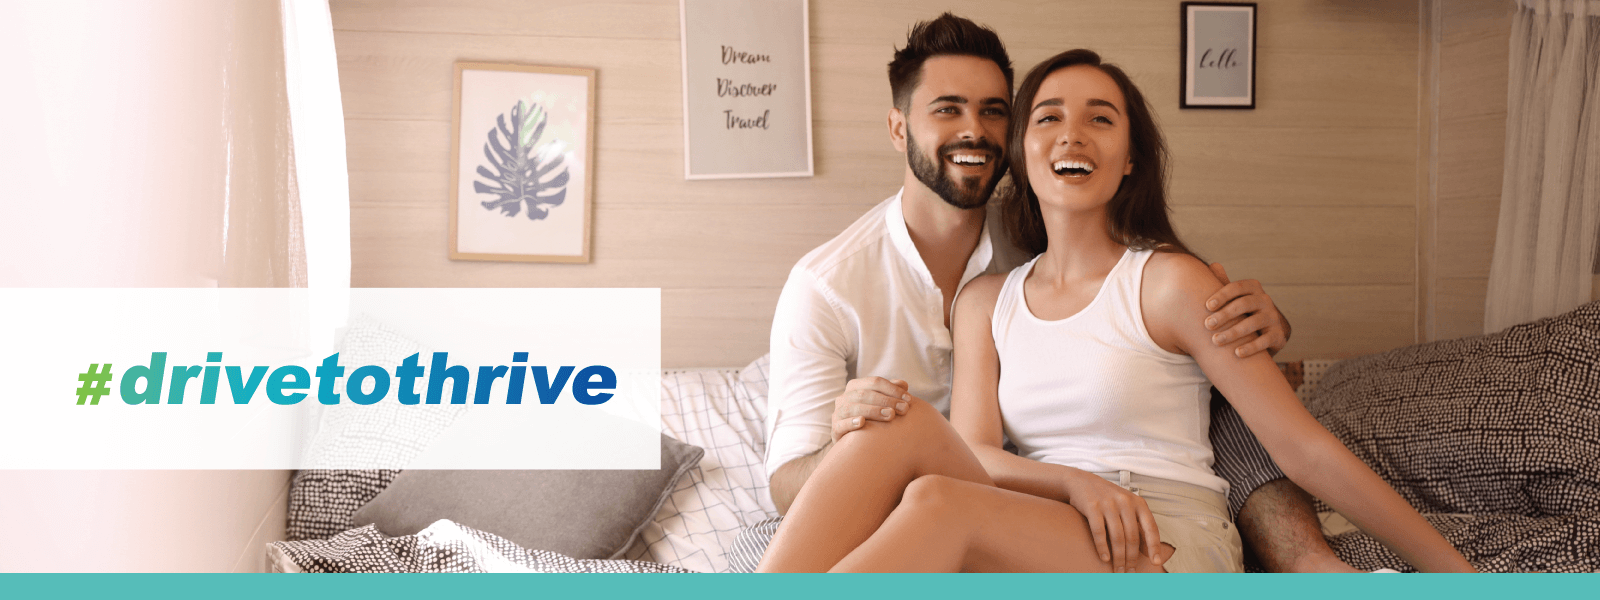 The Drive to thrive. See how other RVers are thriving on the road.